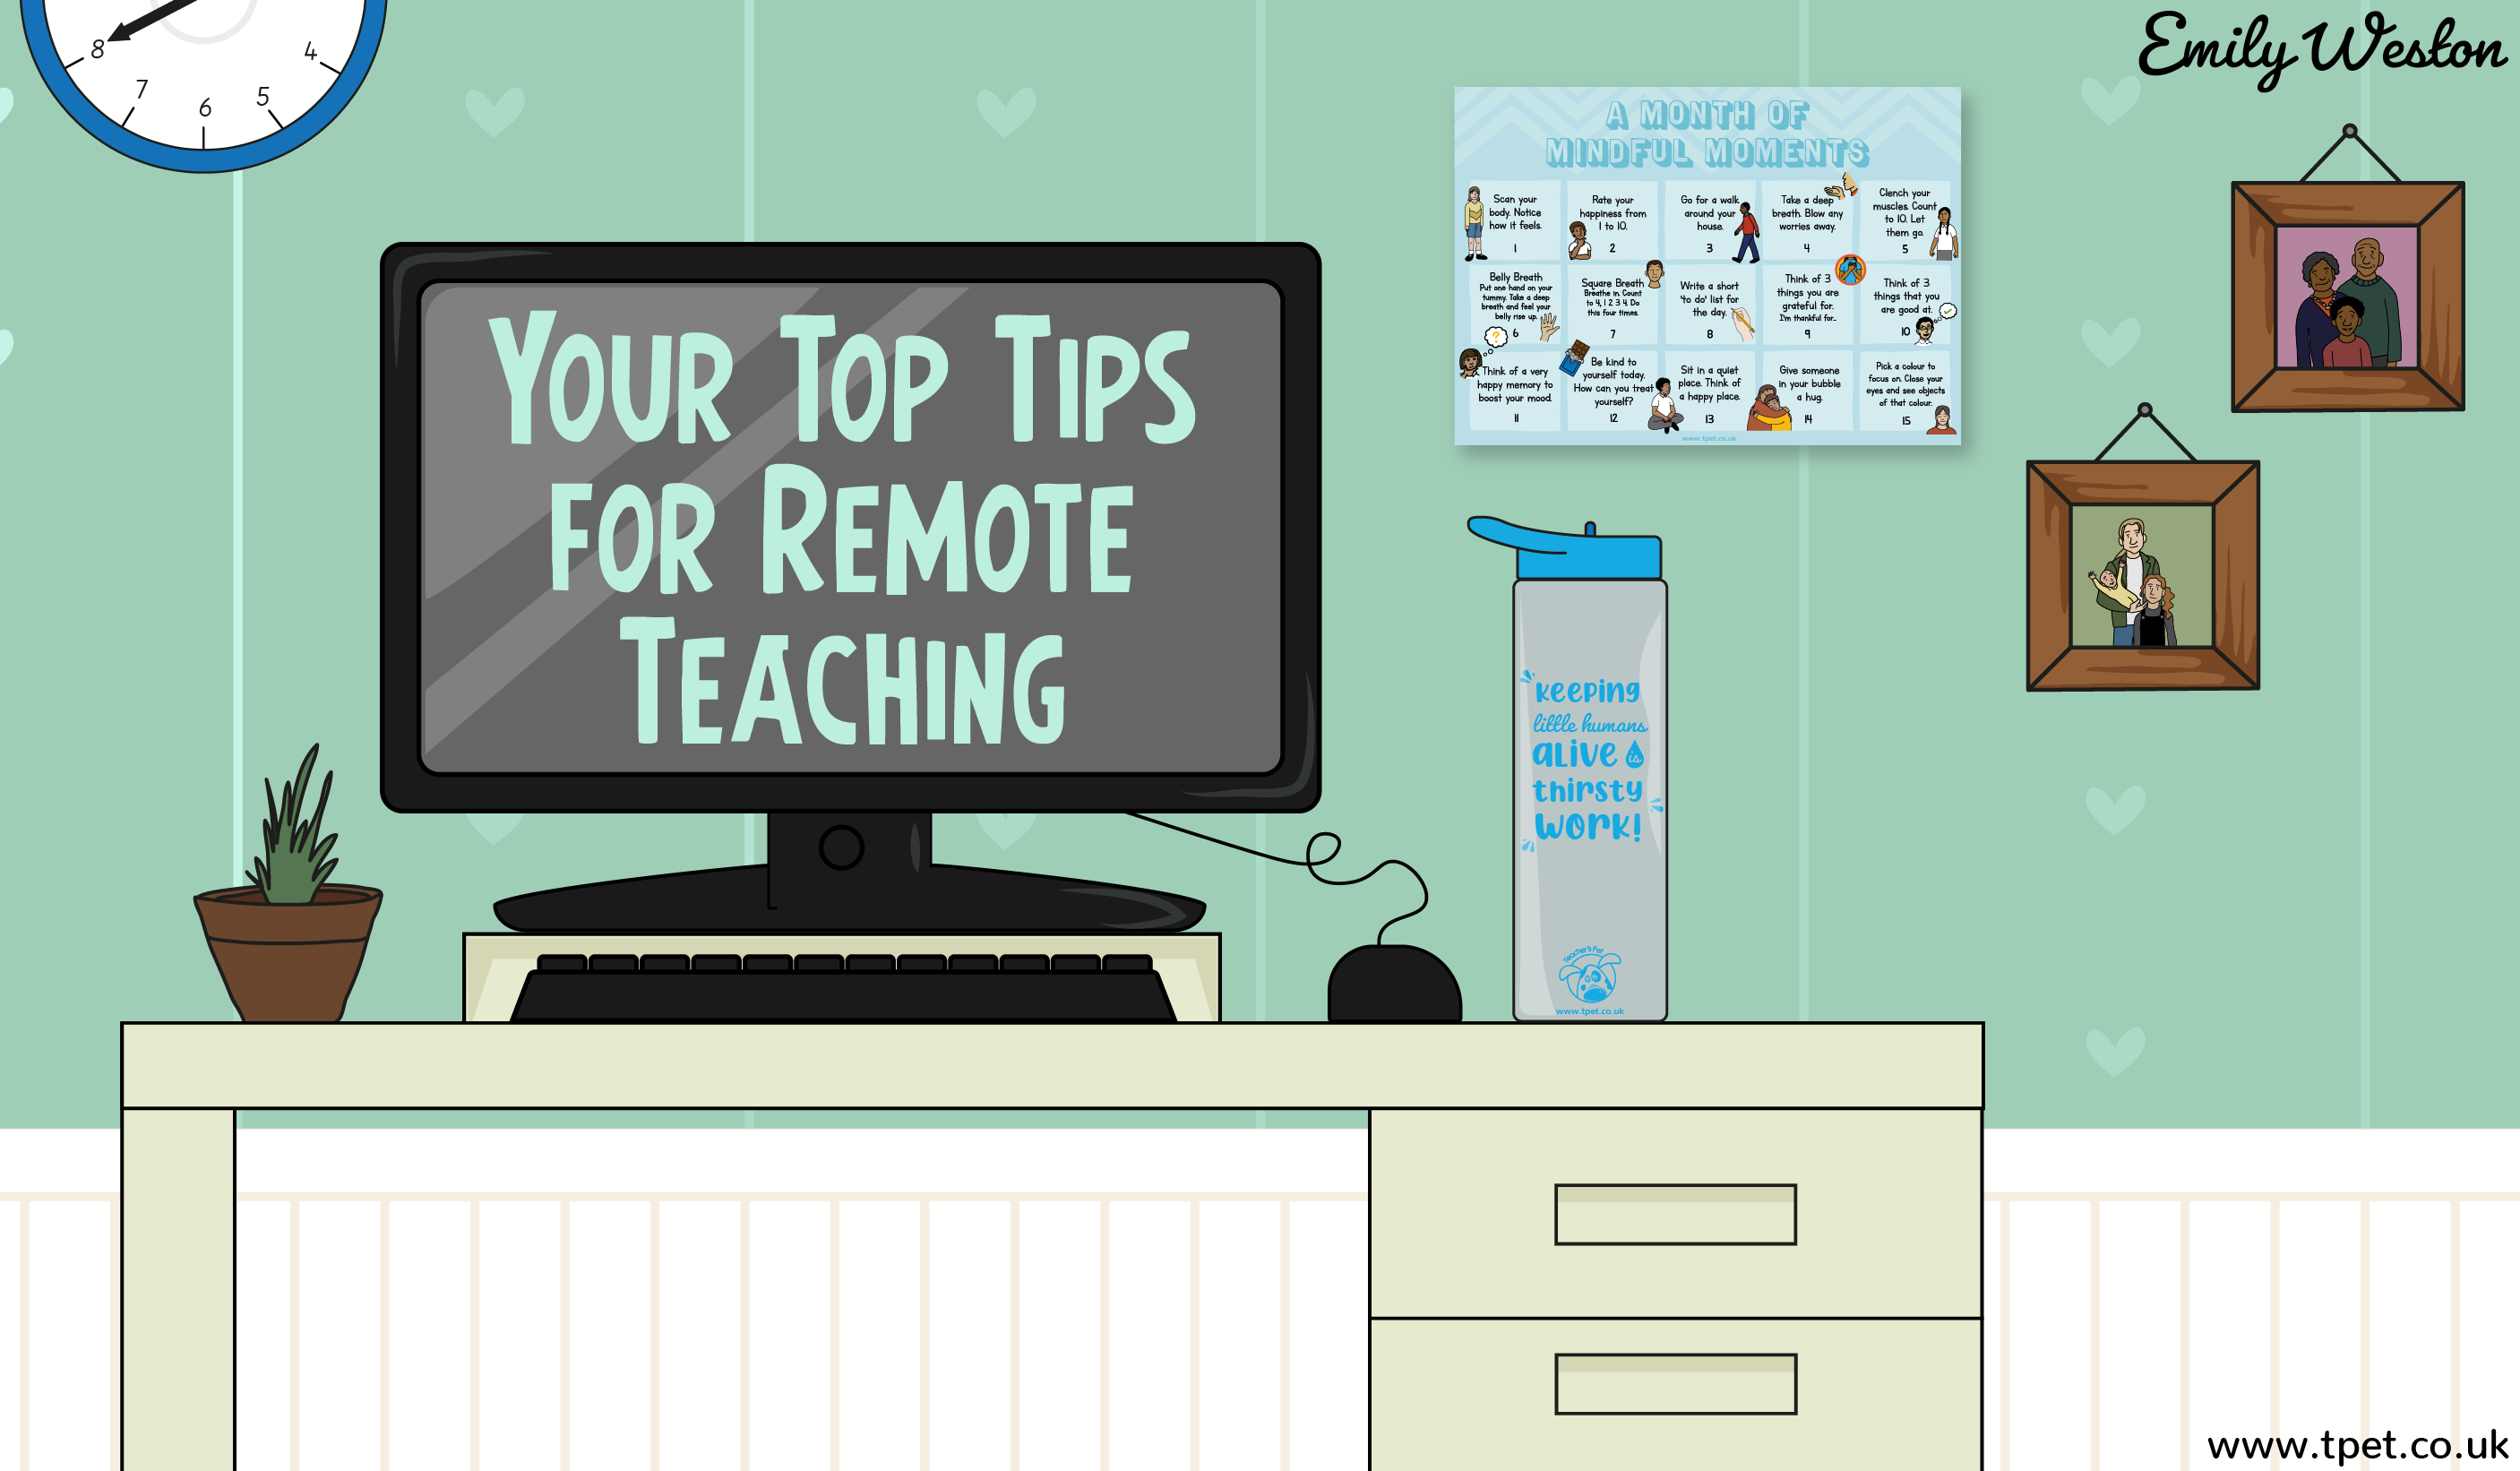 Your Top Tips for Remote Learning